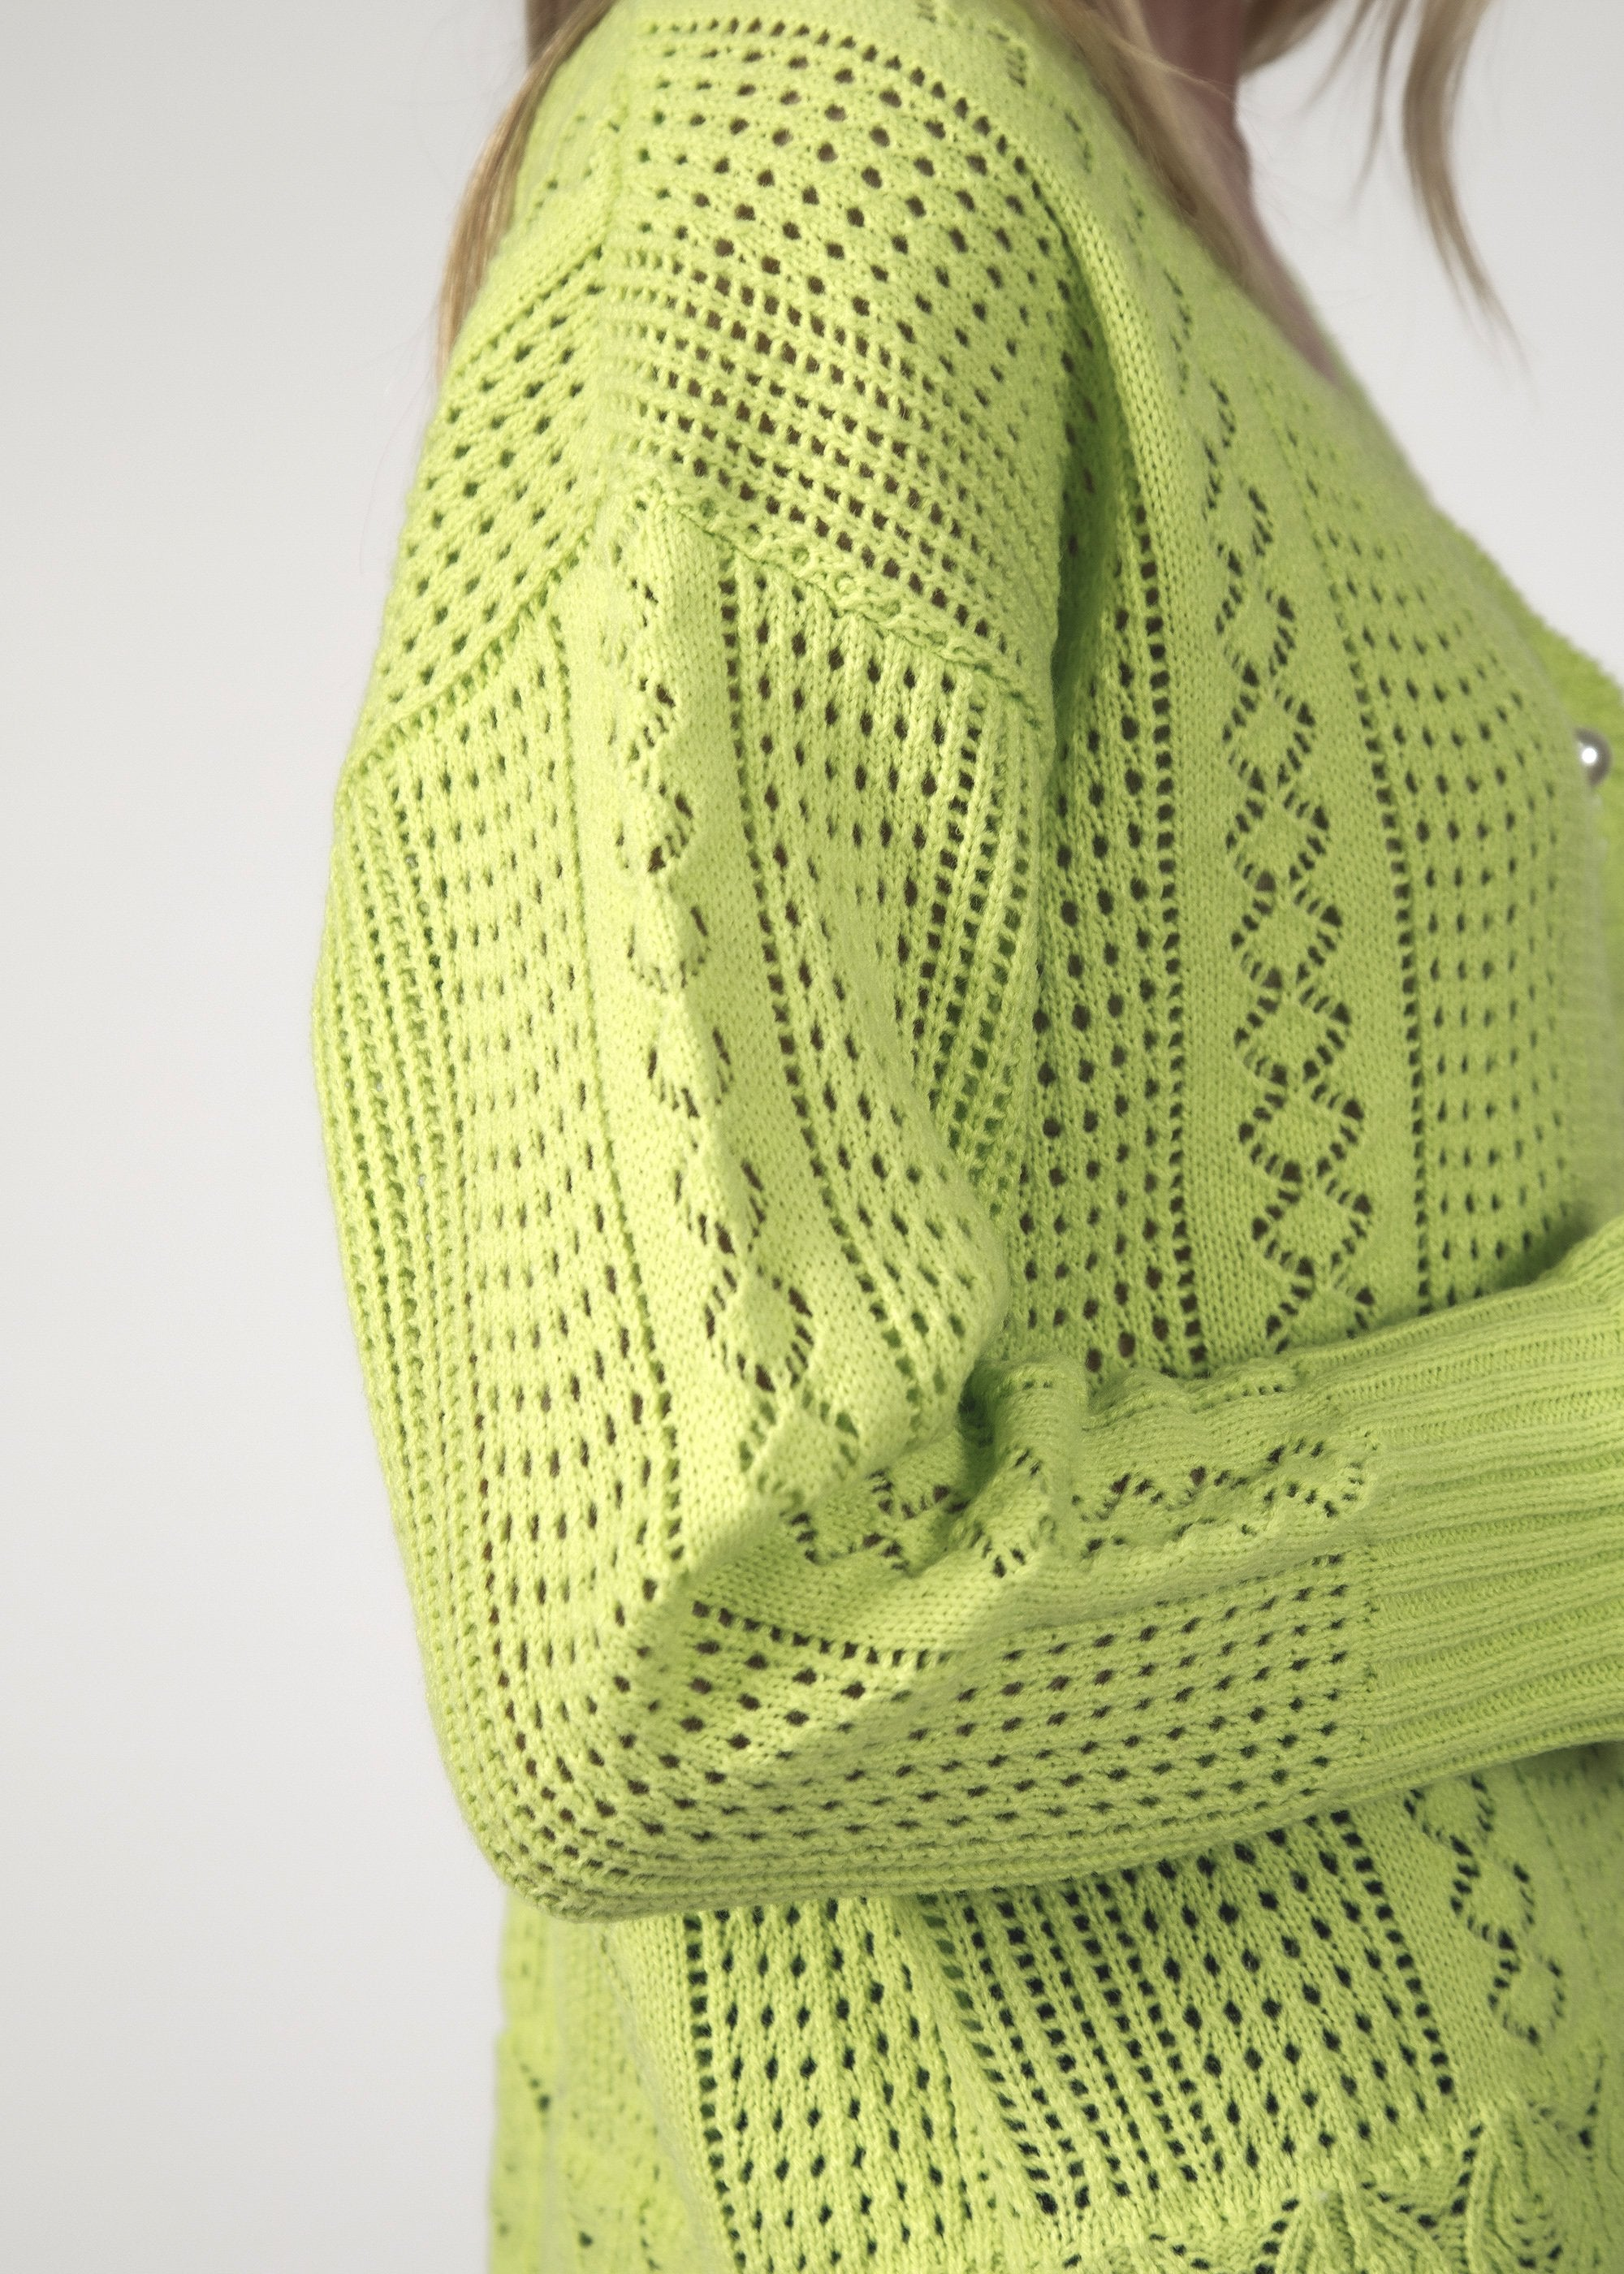 SALE - FLING CARDIGAN - Lime